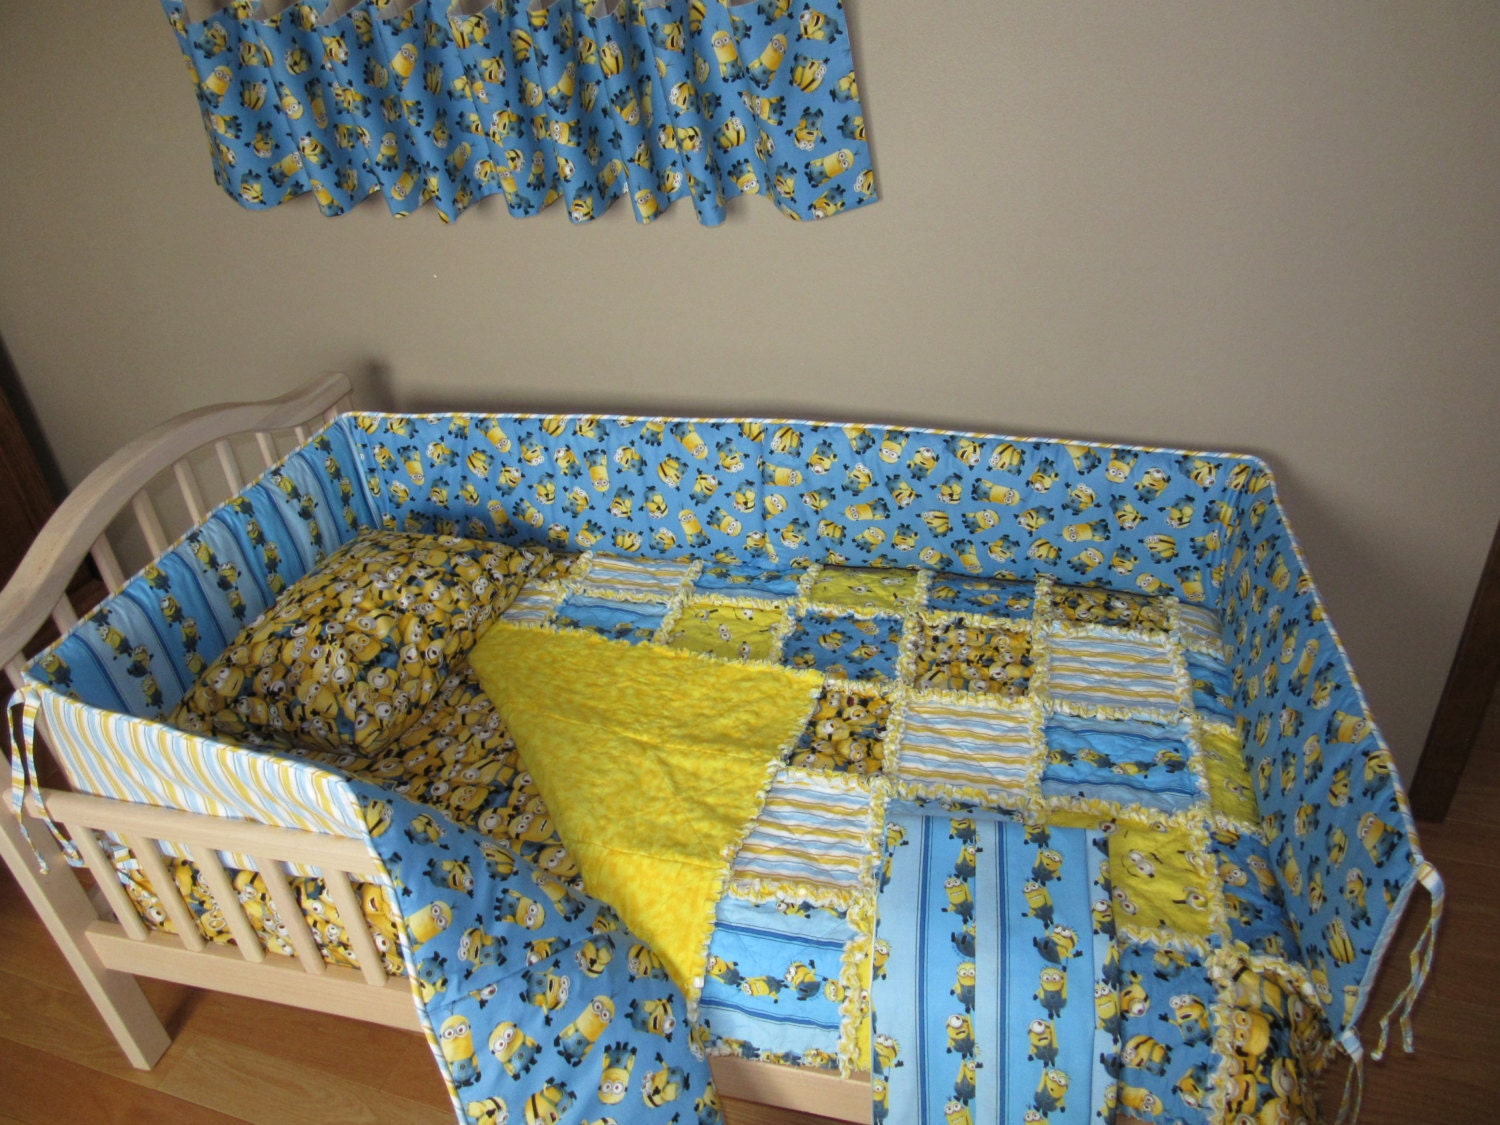 Minion Despicable Me Fabric Crib Bedding Set Rag Quilt Valance